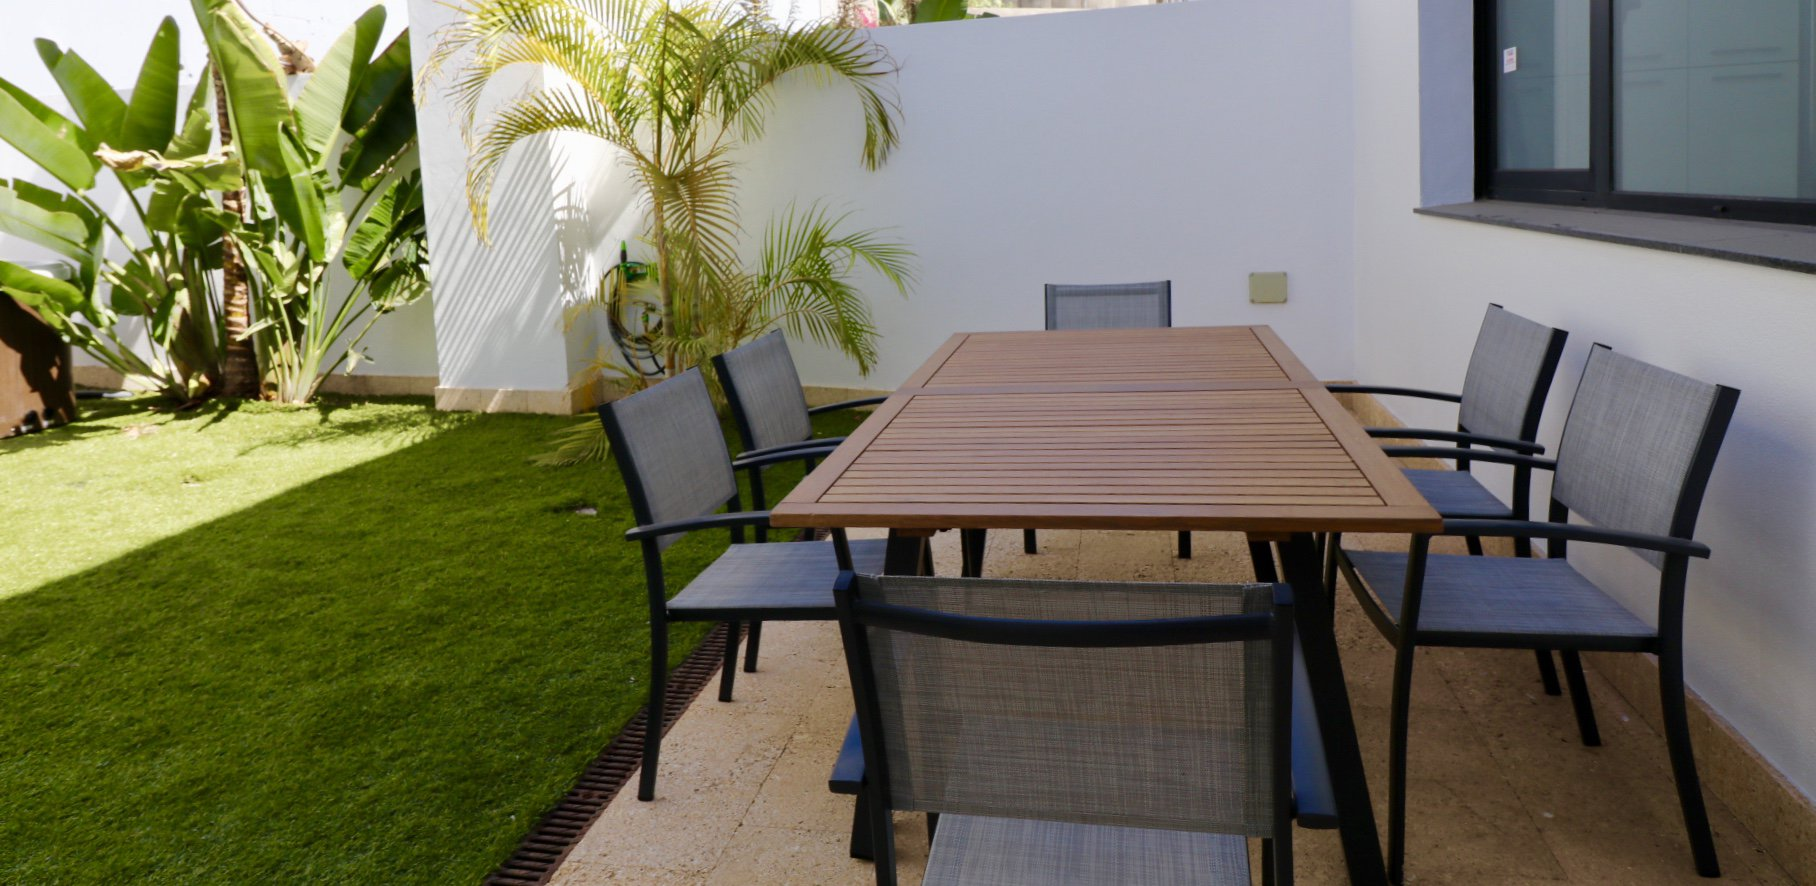 For rent in San Miguel, luxury house